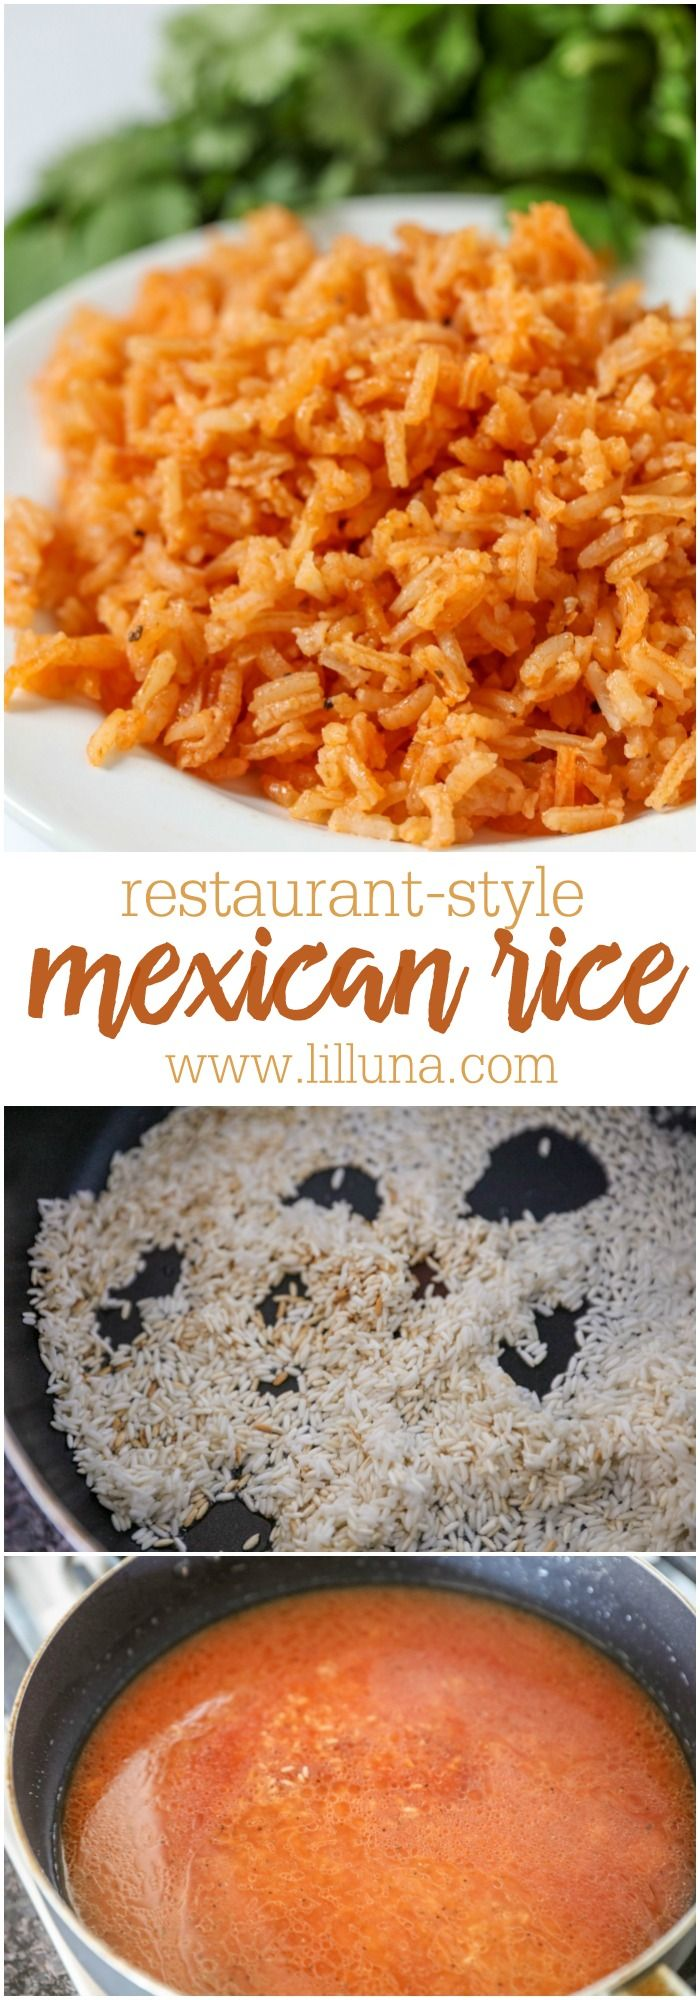 37 best comida mexicana images on pinterest rezepte delicious restaurant style mex restaurant style mexican rice it is one of the easiest and most delicious recipes youll try our whole family loves it forumfinder Image collections